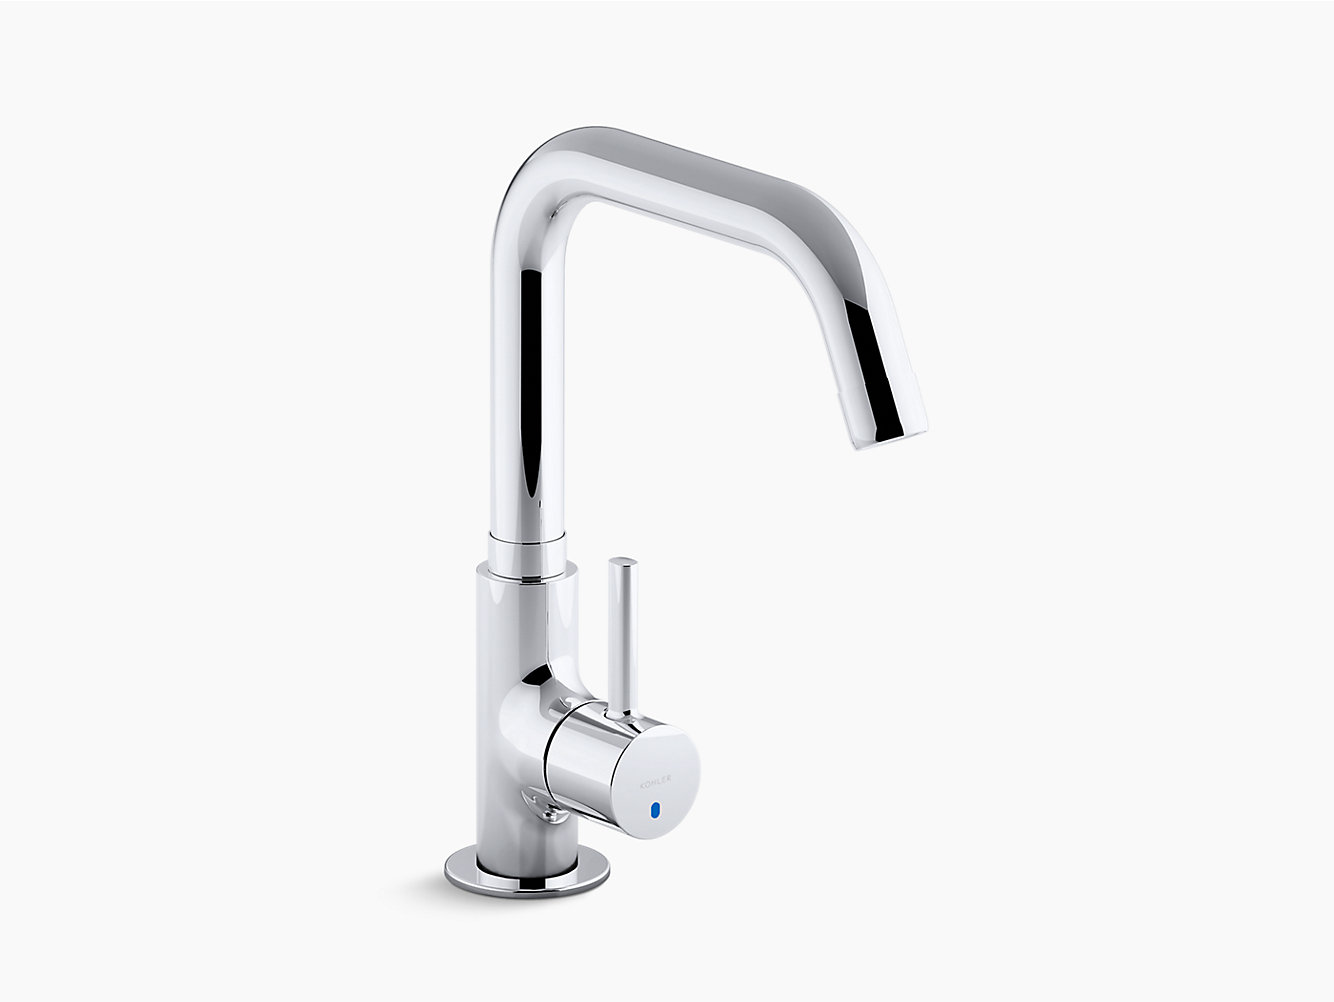 interior faucet ideas on kitchen design faucets style restaurant down modern kohler bn pull decor with amazing cool